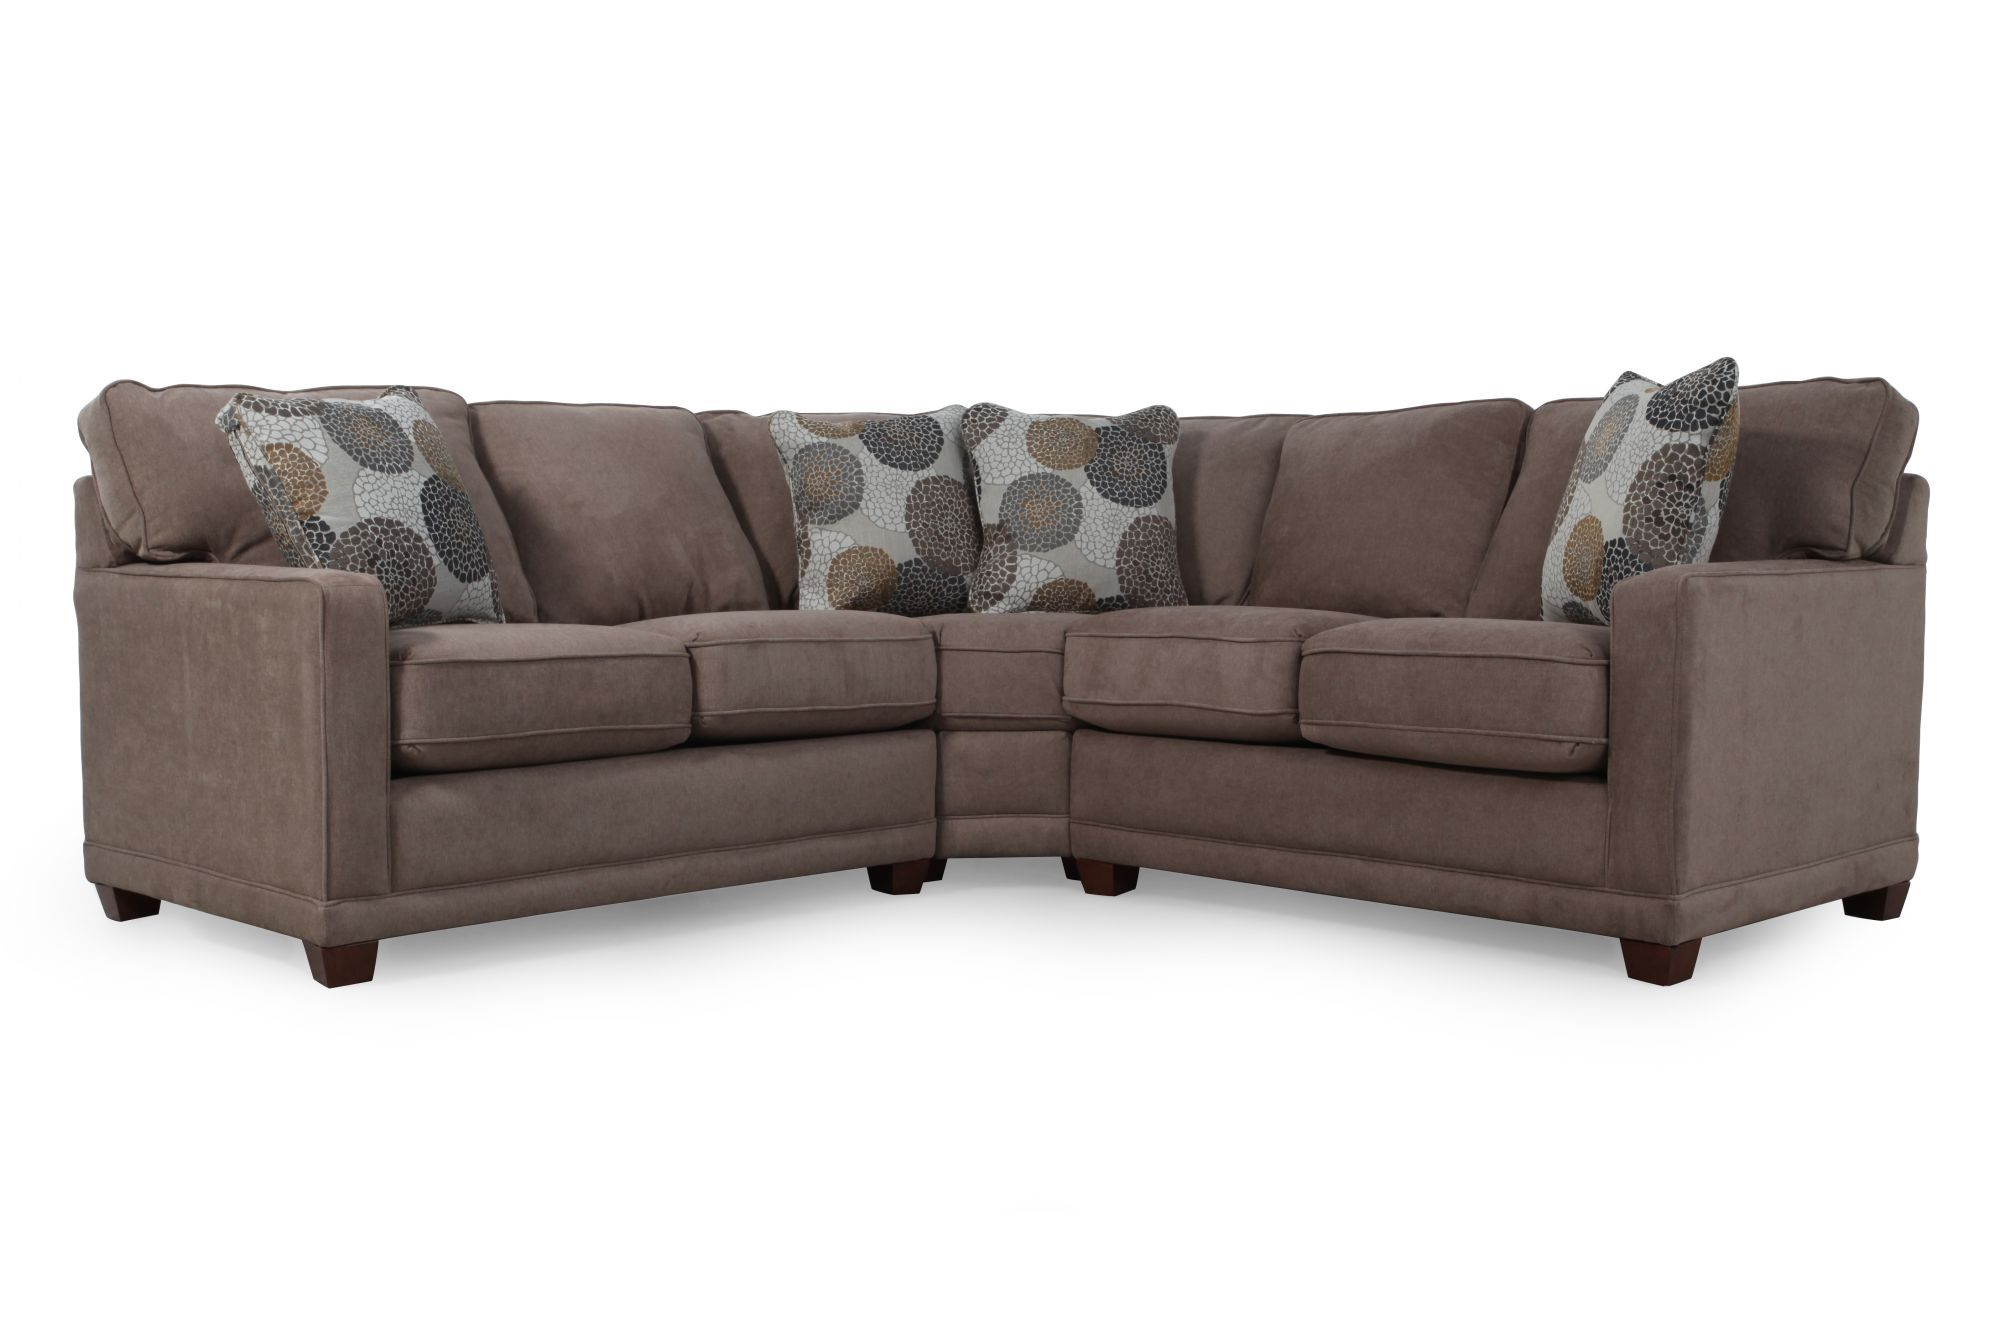 La-Z-Boy Kennedy Cashmere Sectional | Mathis Brothers Furniture  sc 1 st  Pinterest : lazyboy sectionals - Sectionals, Sofas & Couches